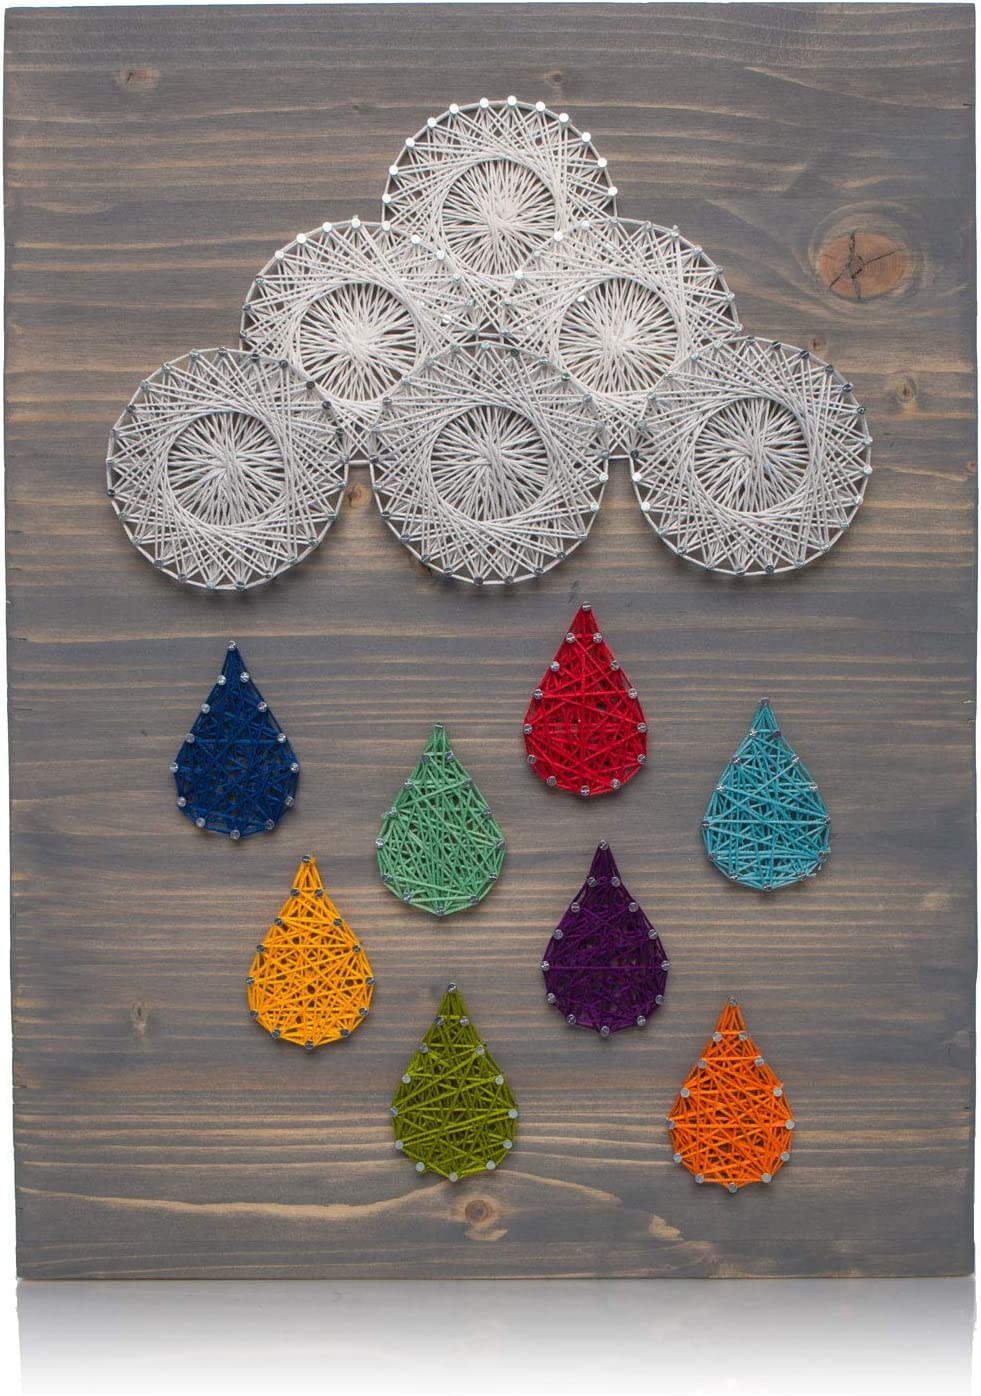 Amazon Com Diy String Art Kit Raindrops String Art Kit Diy Adult Crafts Kit Includes All Supplies Nursery Wall Art Baby Shower Gift String Art Wall Hanging